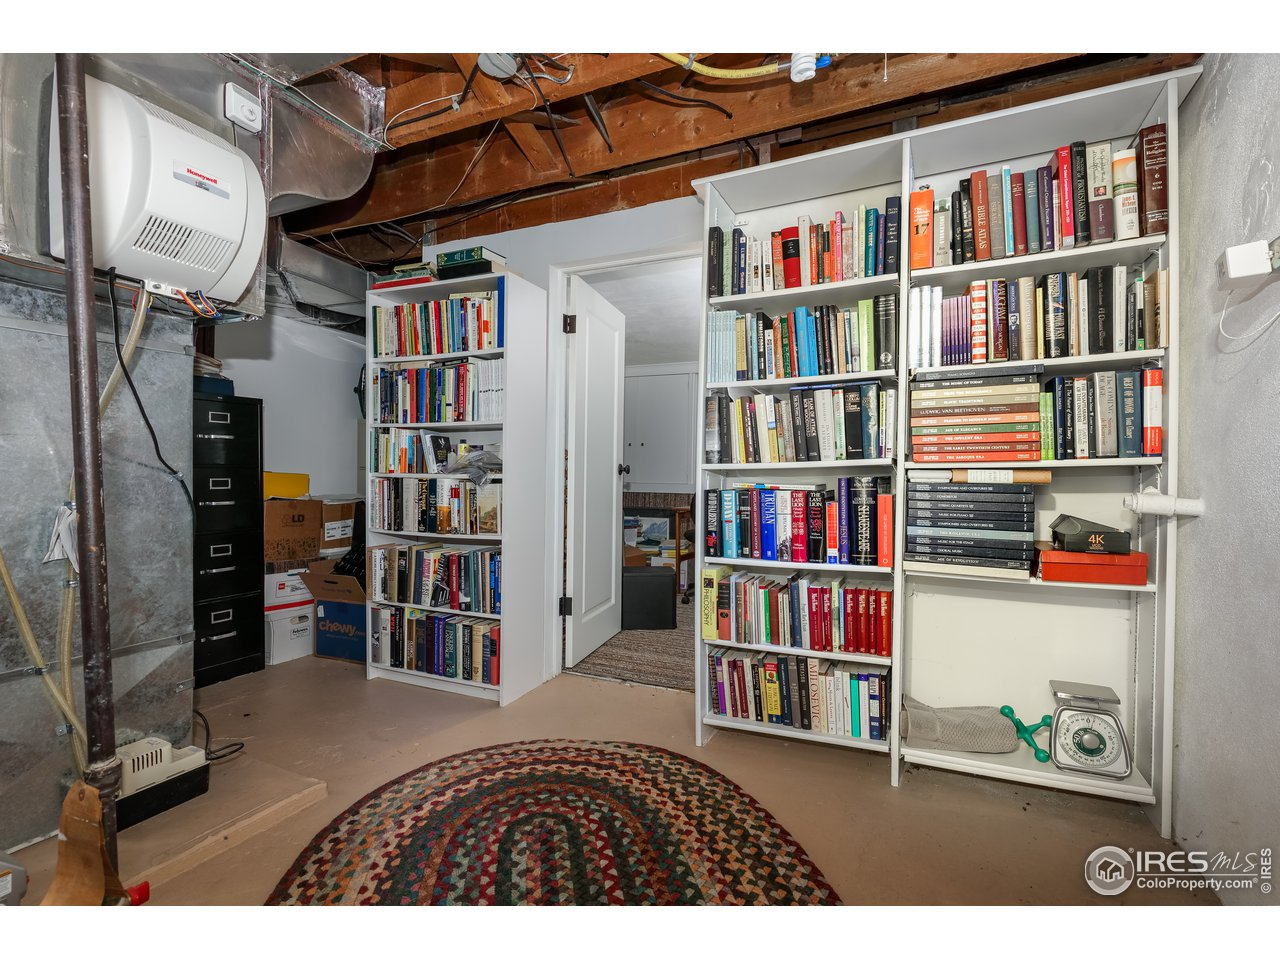 furnace room and additional room in the basement